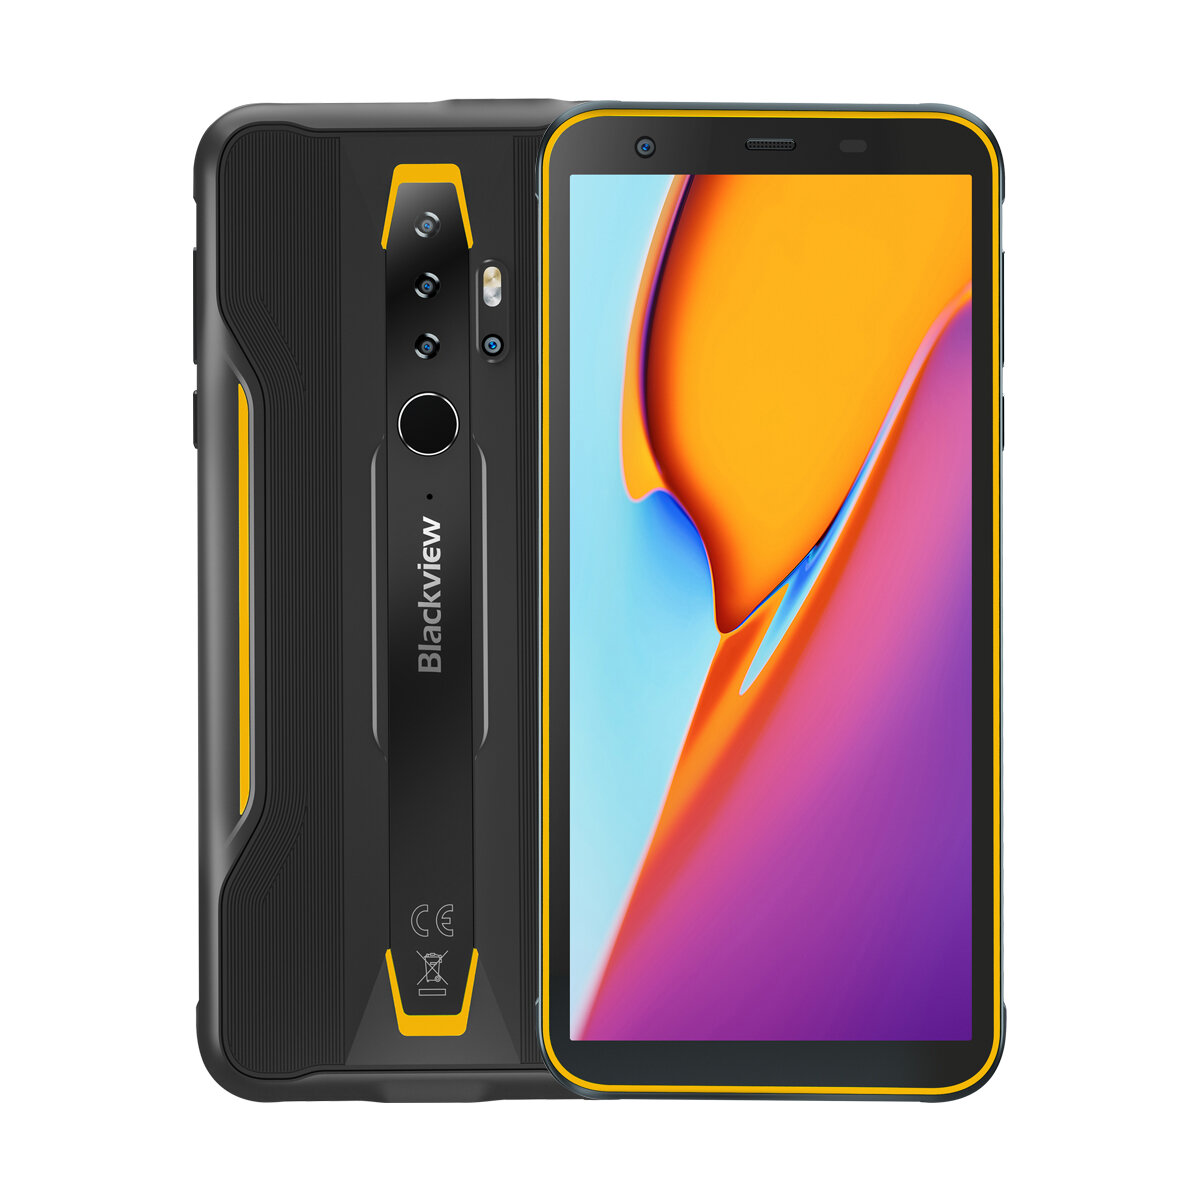 Blackview BV6300 Global Bands IP68&IP69K 5.7 inch NFC Android 10 4380mAh 3GB 32GB Helio A25 4G Smartphone - Yellow